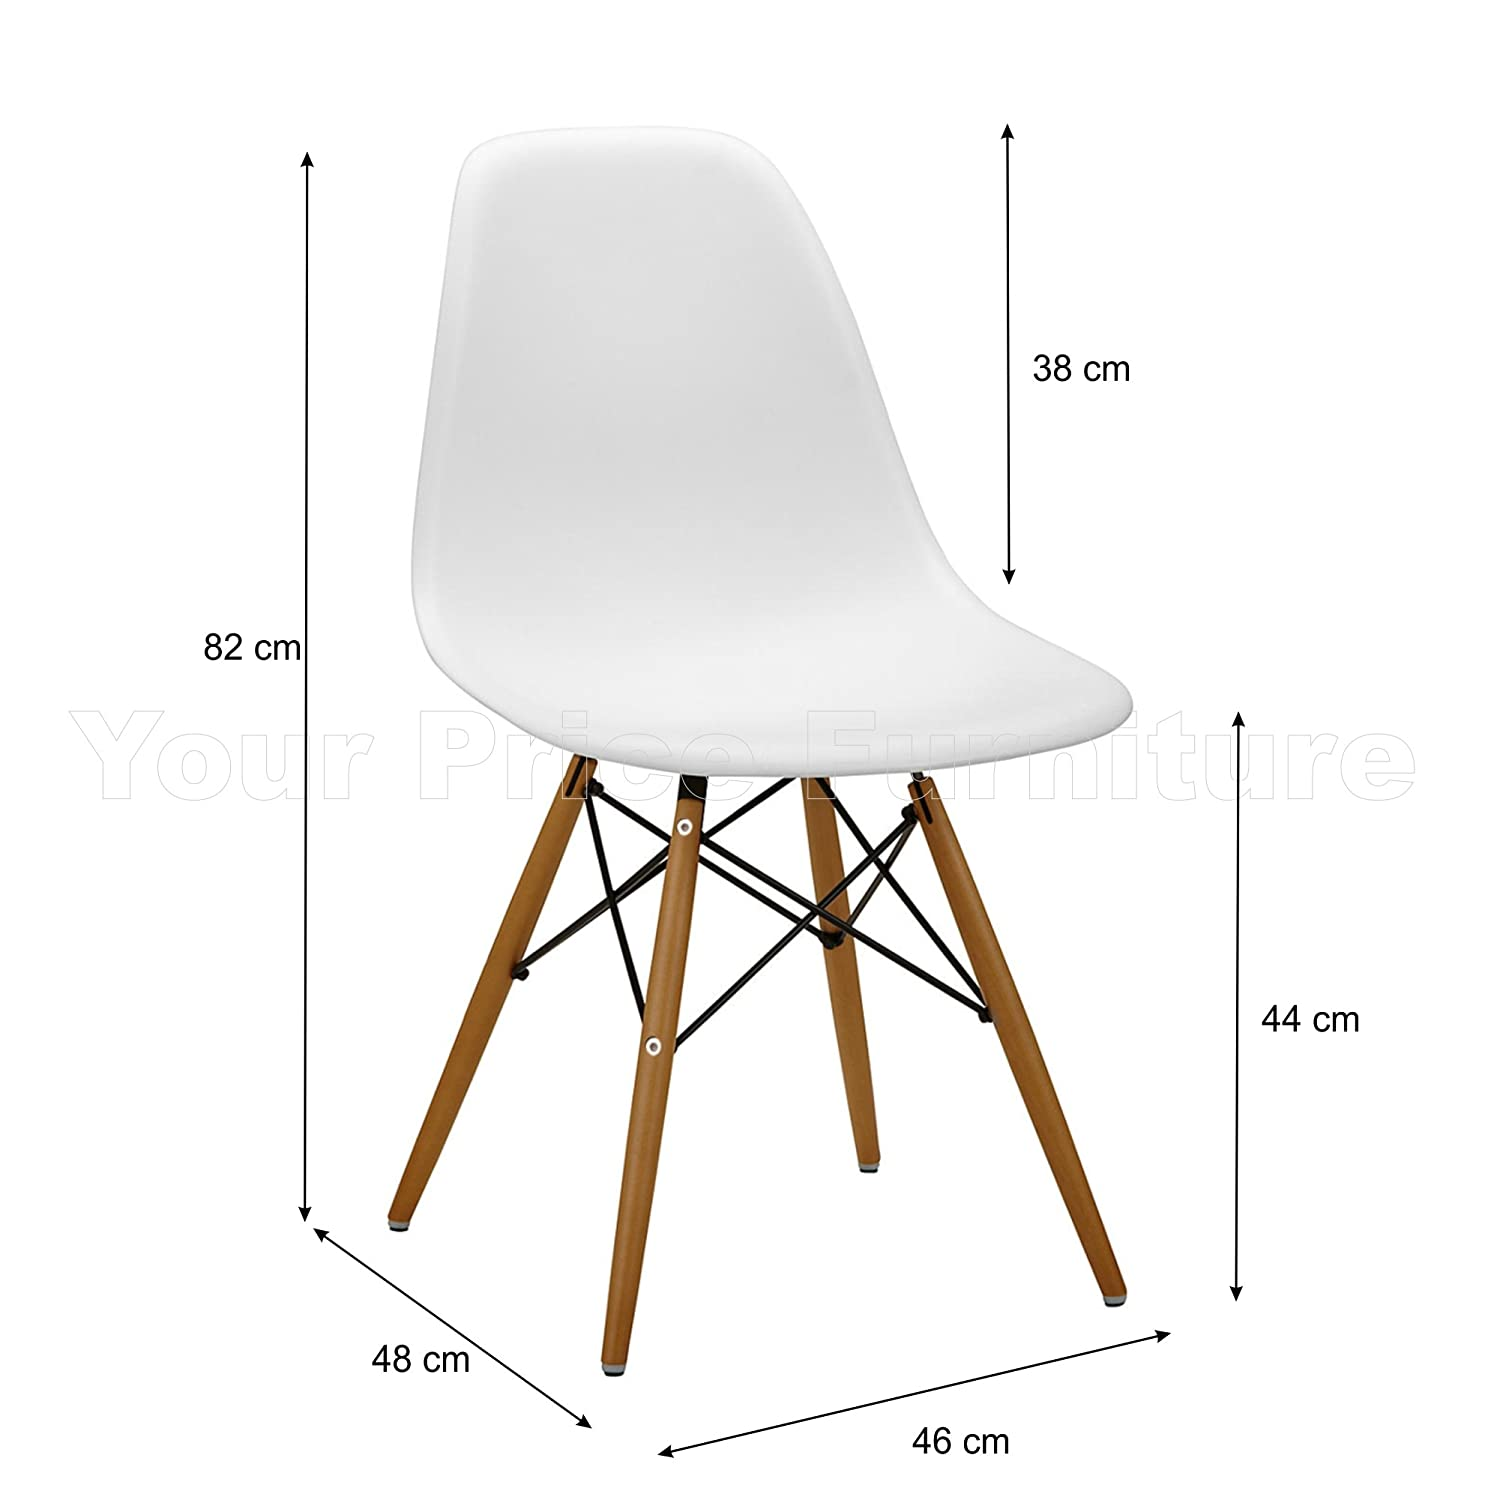 6 White Eames Inspired ABS Dining Chairs   DSW Eiffel Side Dining Chairs...:  Amazon.co.uk: Kitchen U0026 Home